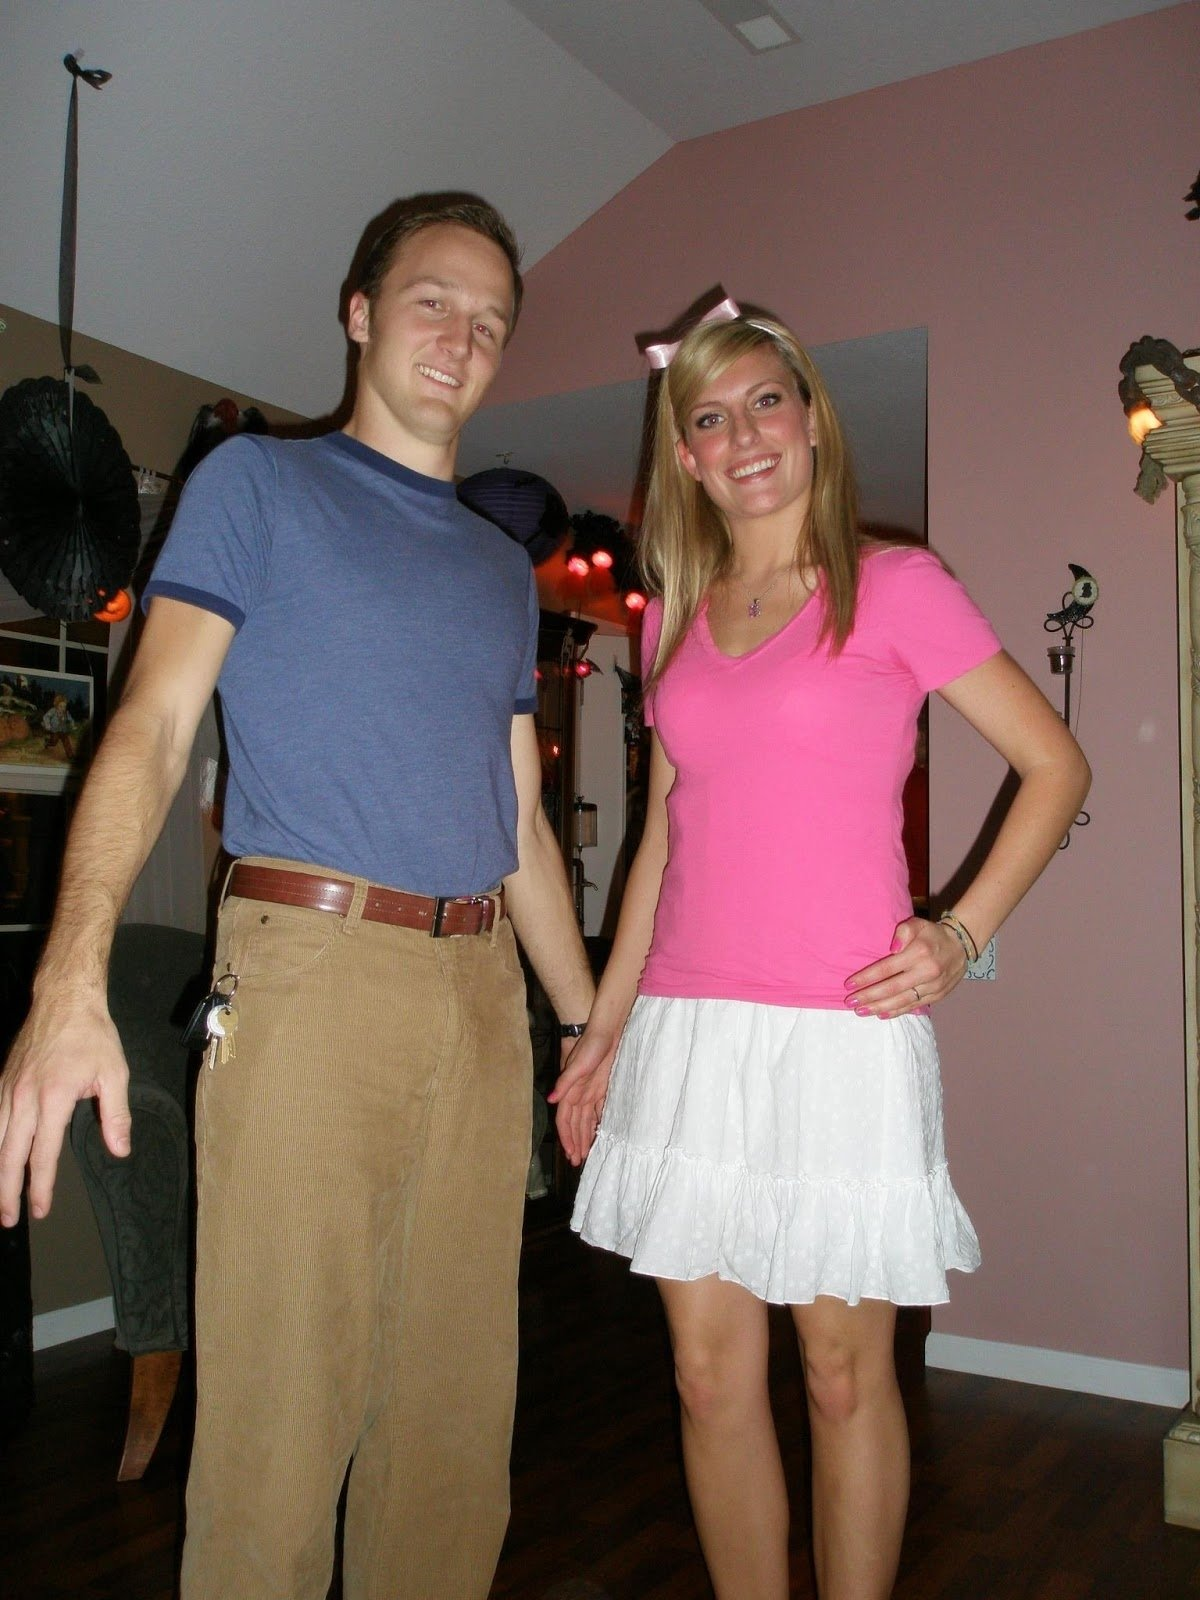 10 unique diy couples halloween costume ideas katie in kansas diy couples halloween costume ideas couples